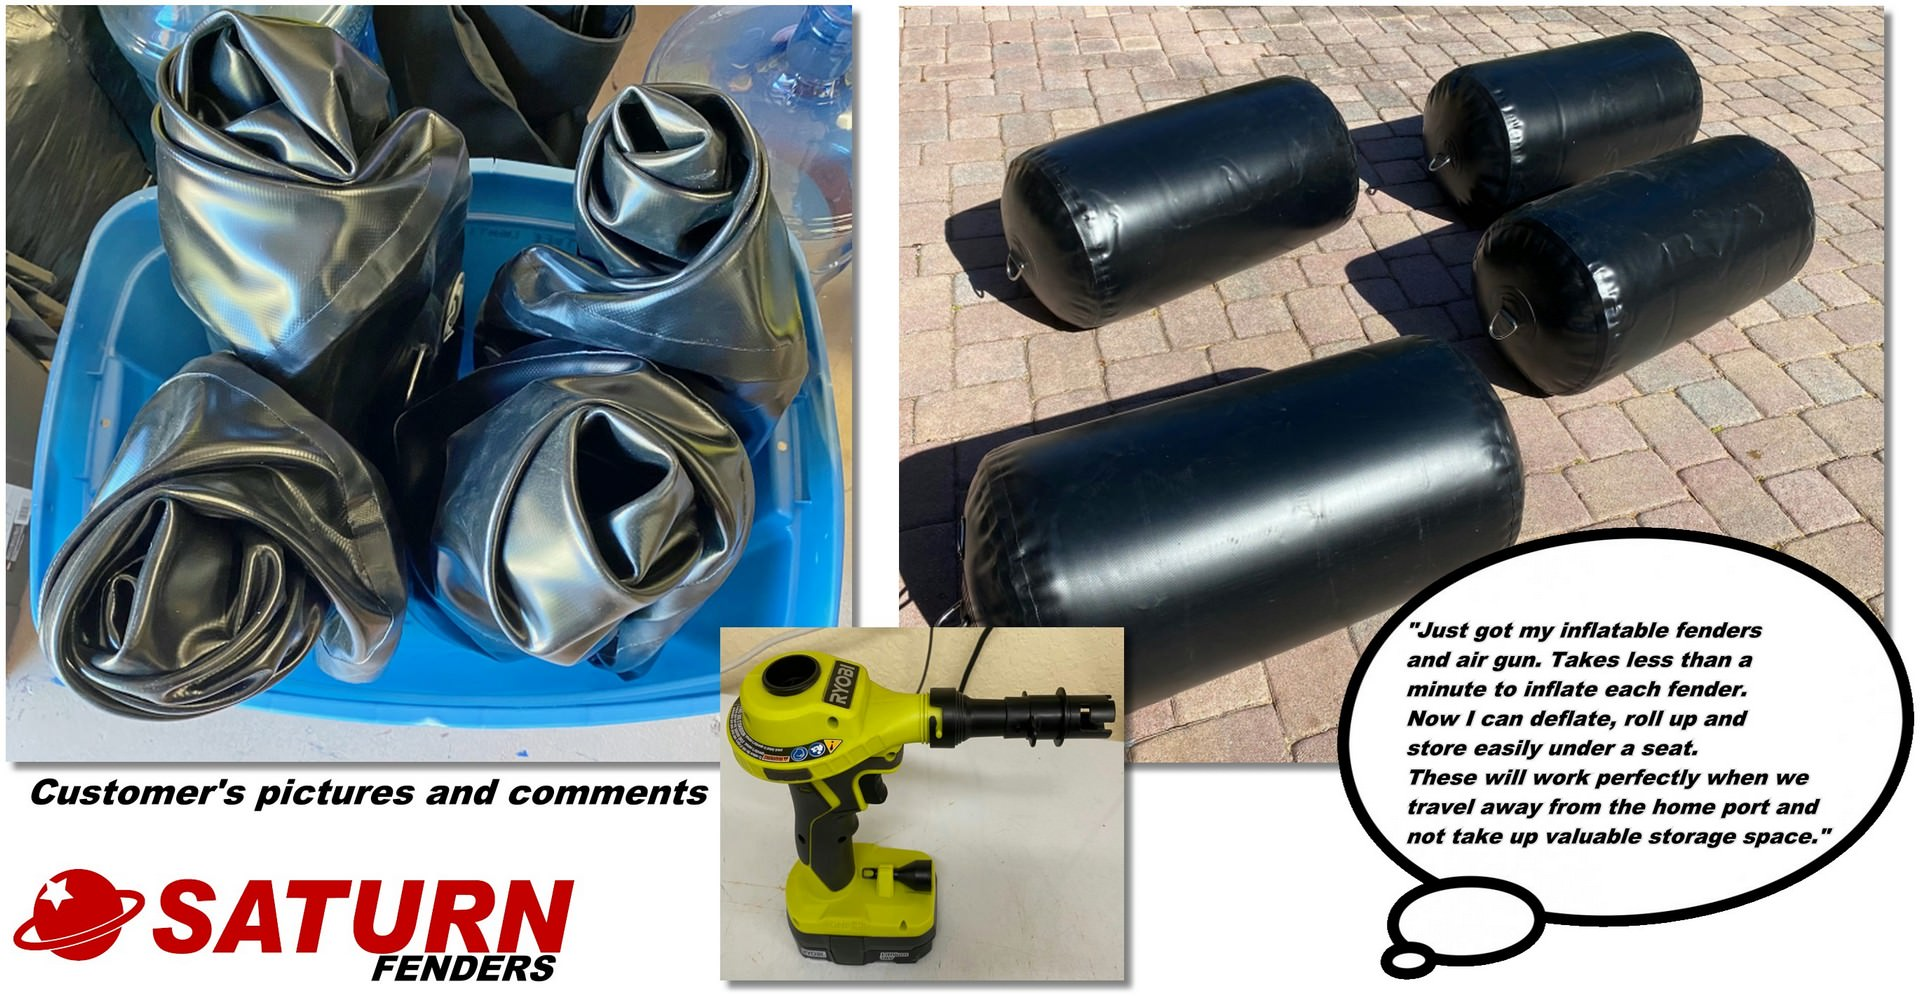 Customer's review and pictures of Saturn inflatable fenders